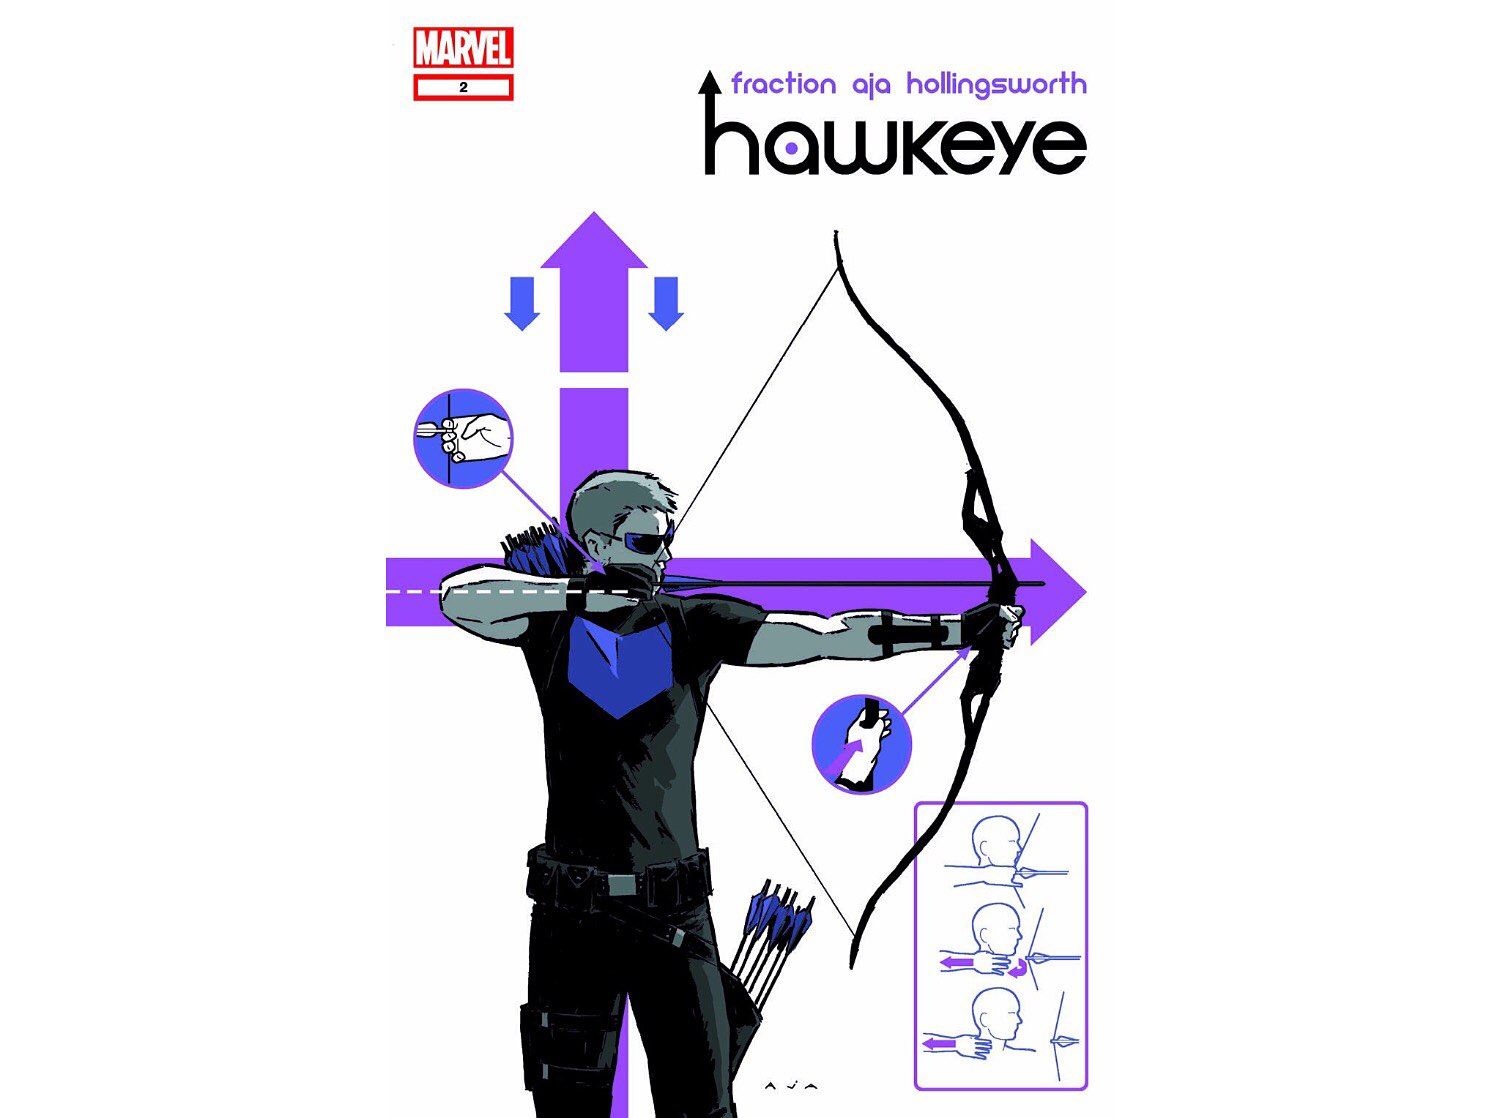 comic-books-graphic-novels-matt-fraction-hawkeye